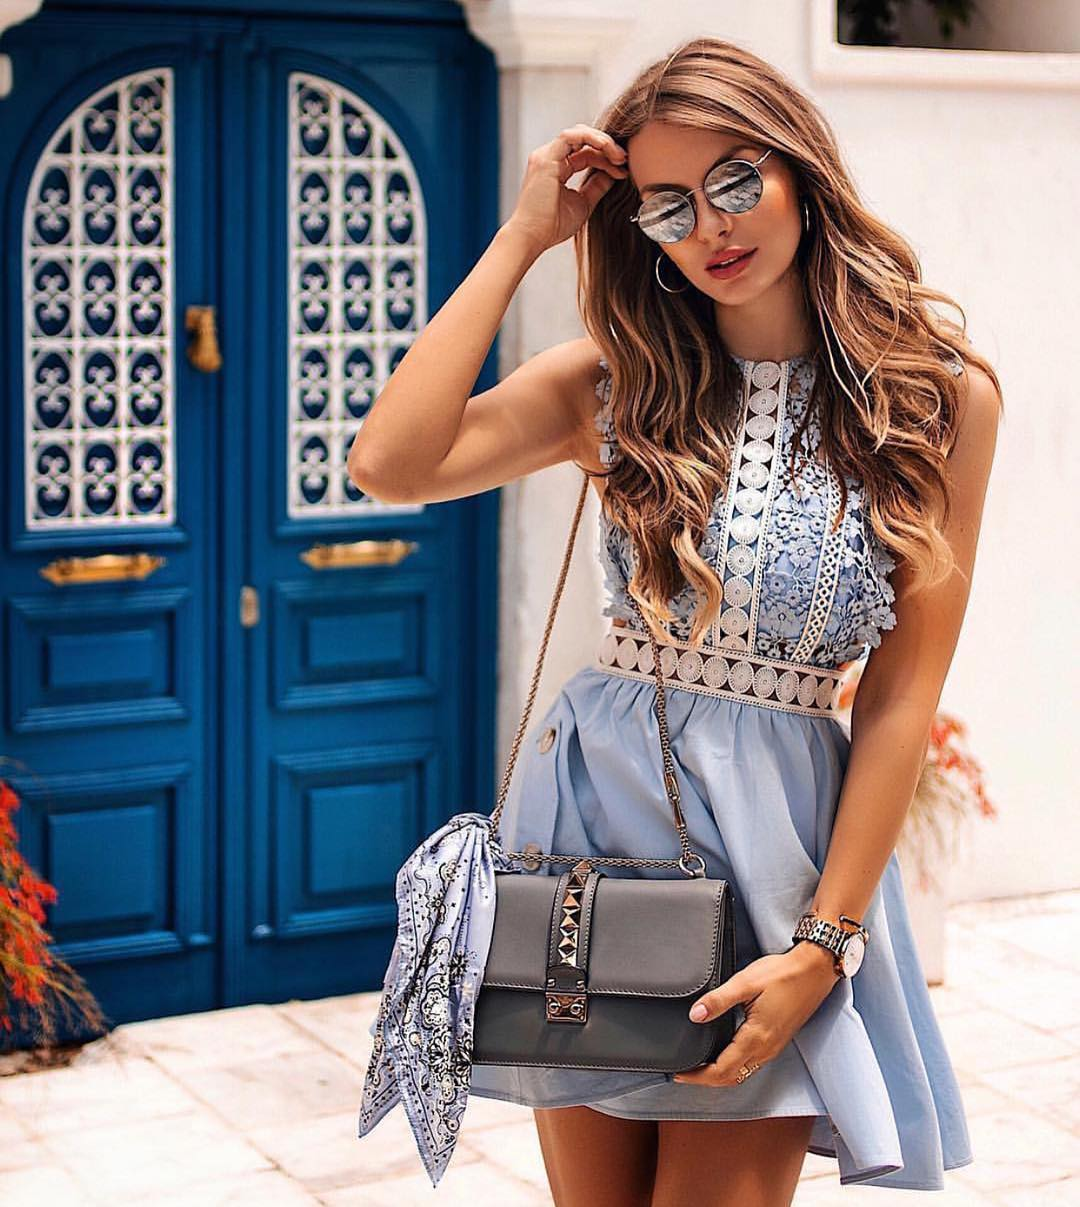 Boho Style Sleeveless Light Blue Dress For Summer Vacation 2019